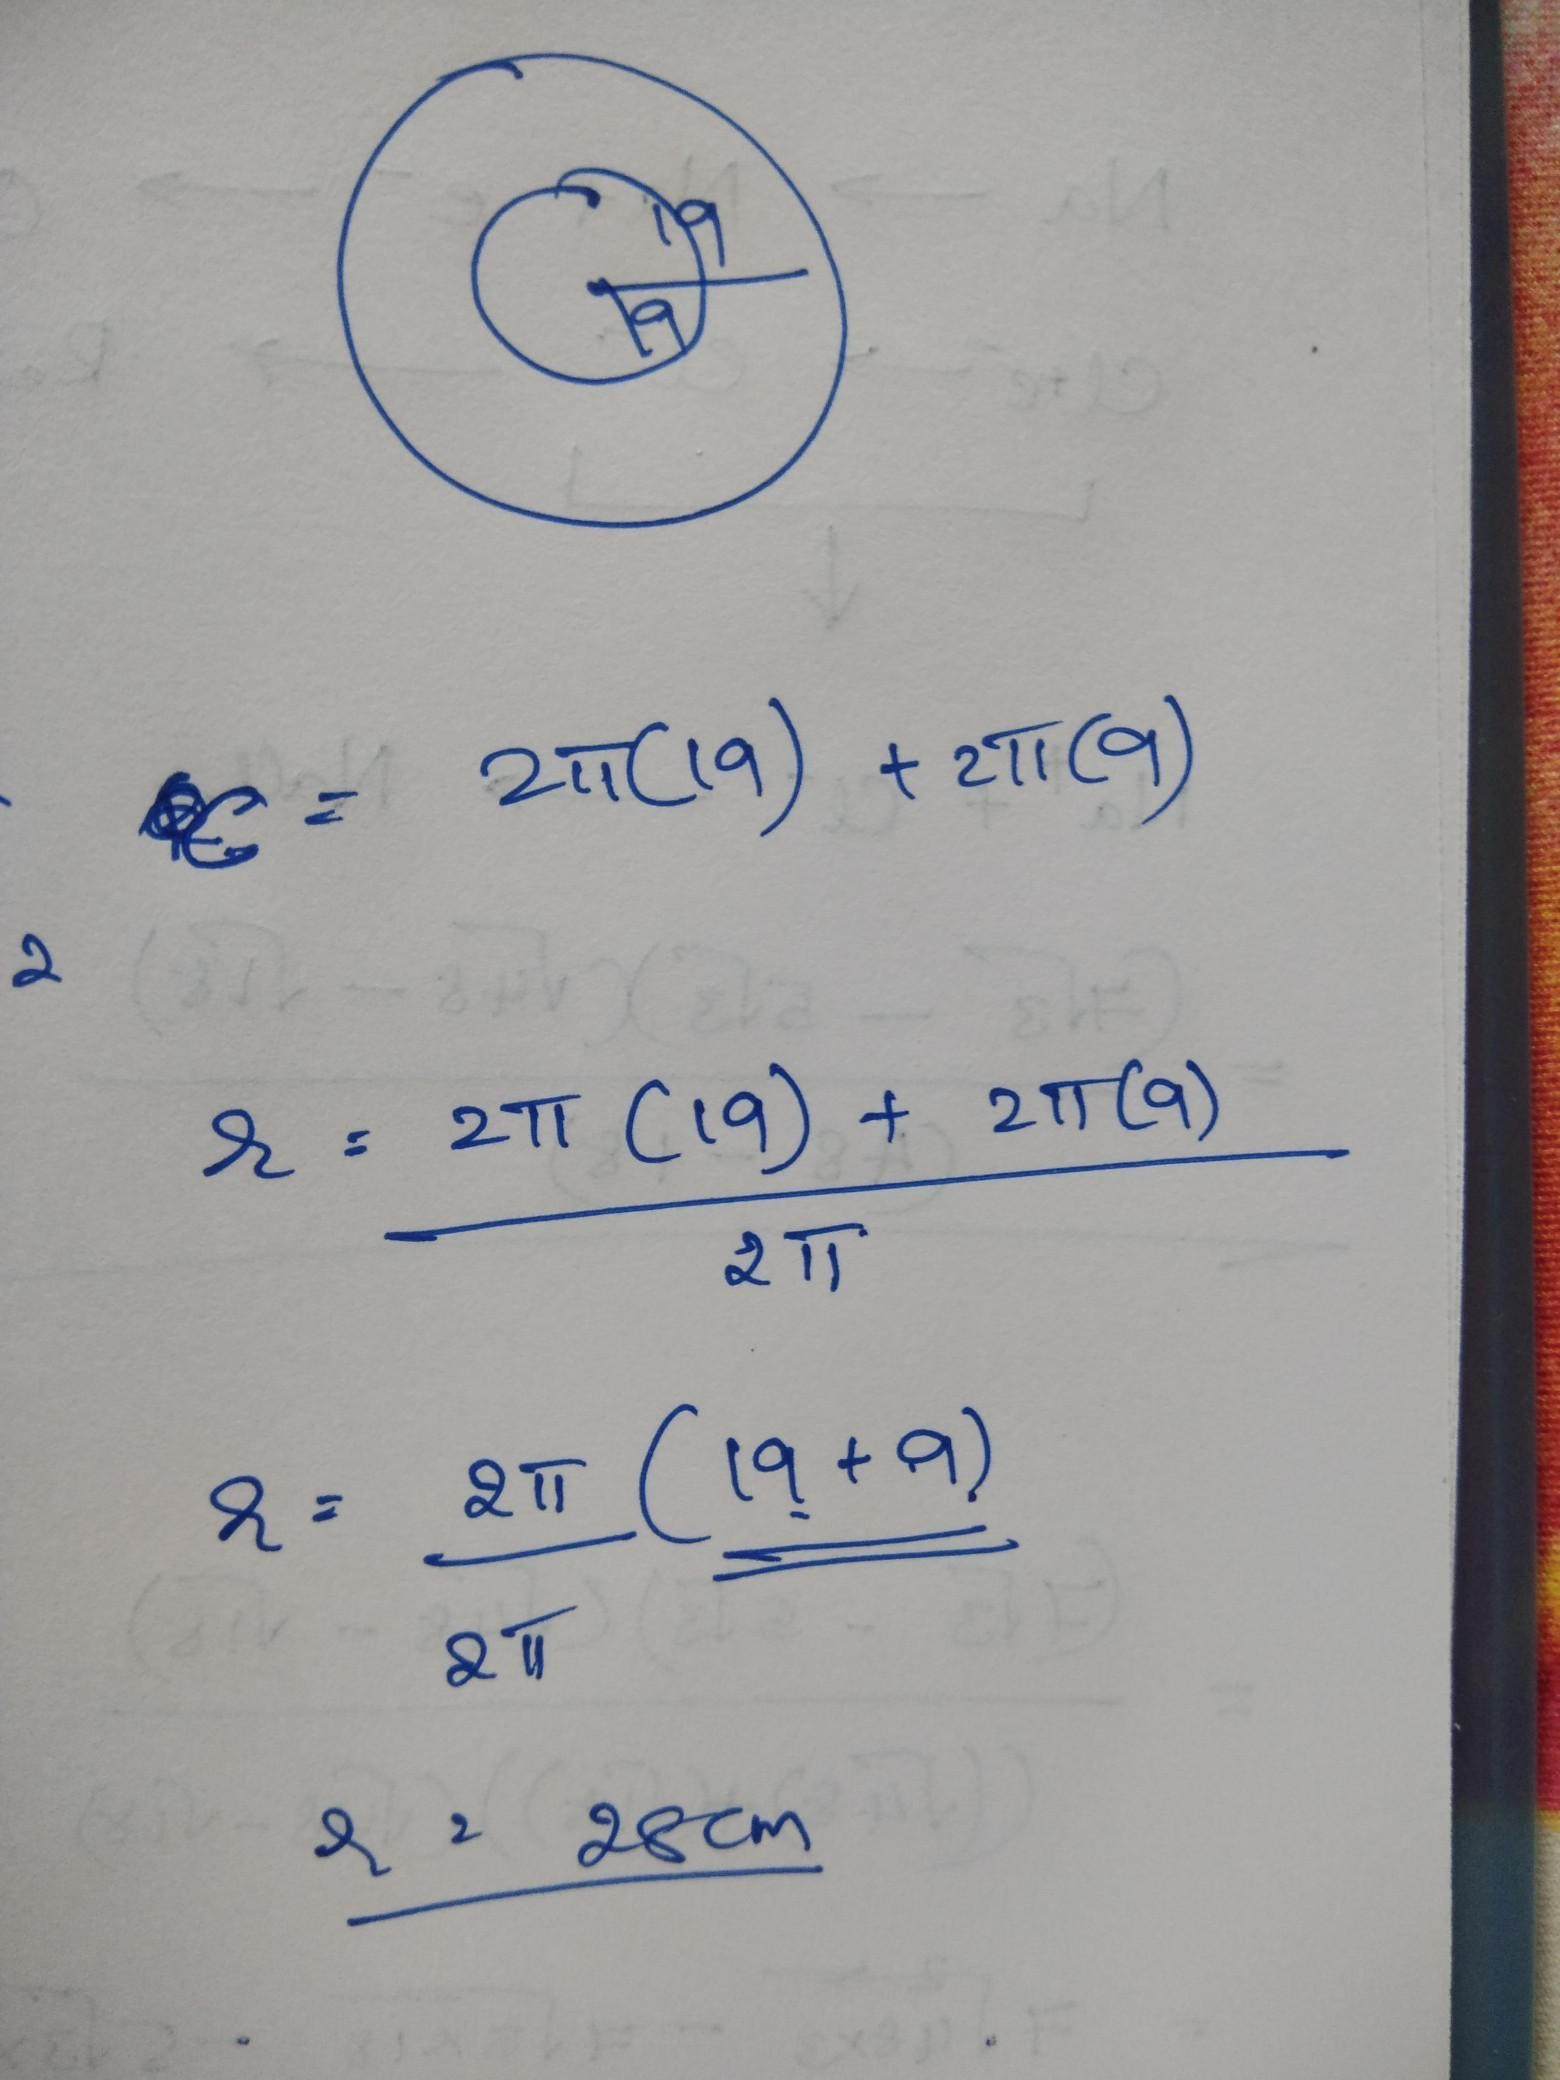 9 To Cm The Radii Of Two Circles Are 19 Cm And 9 Cm Respectively Find The